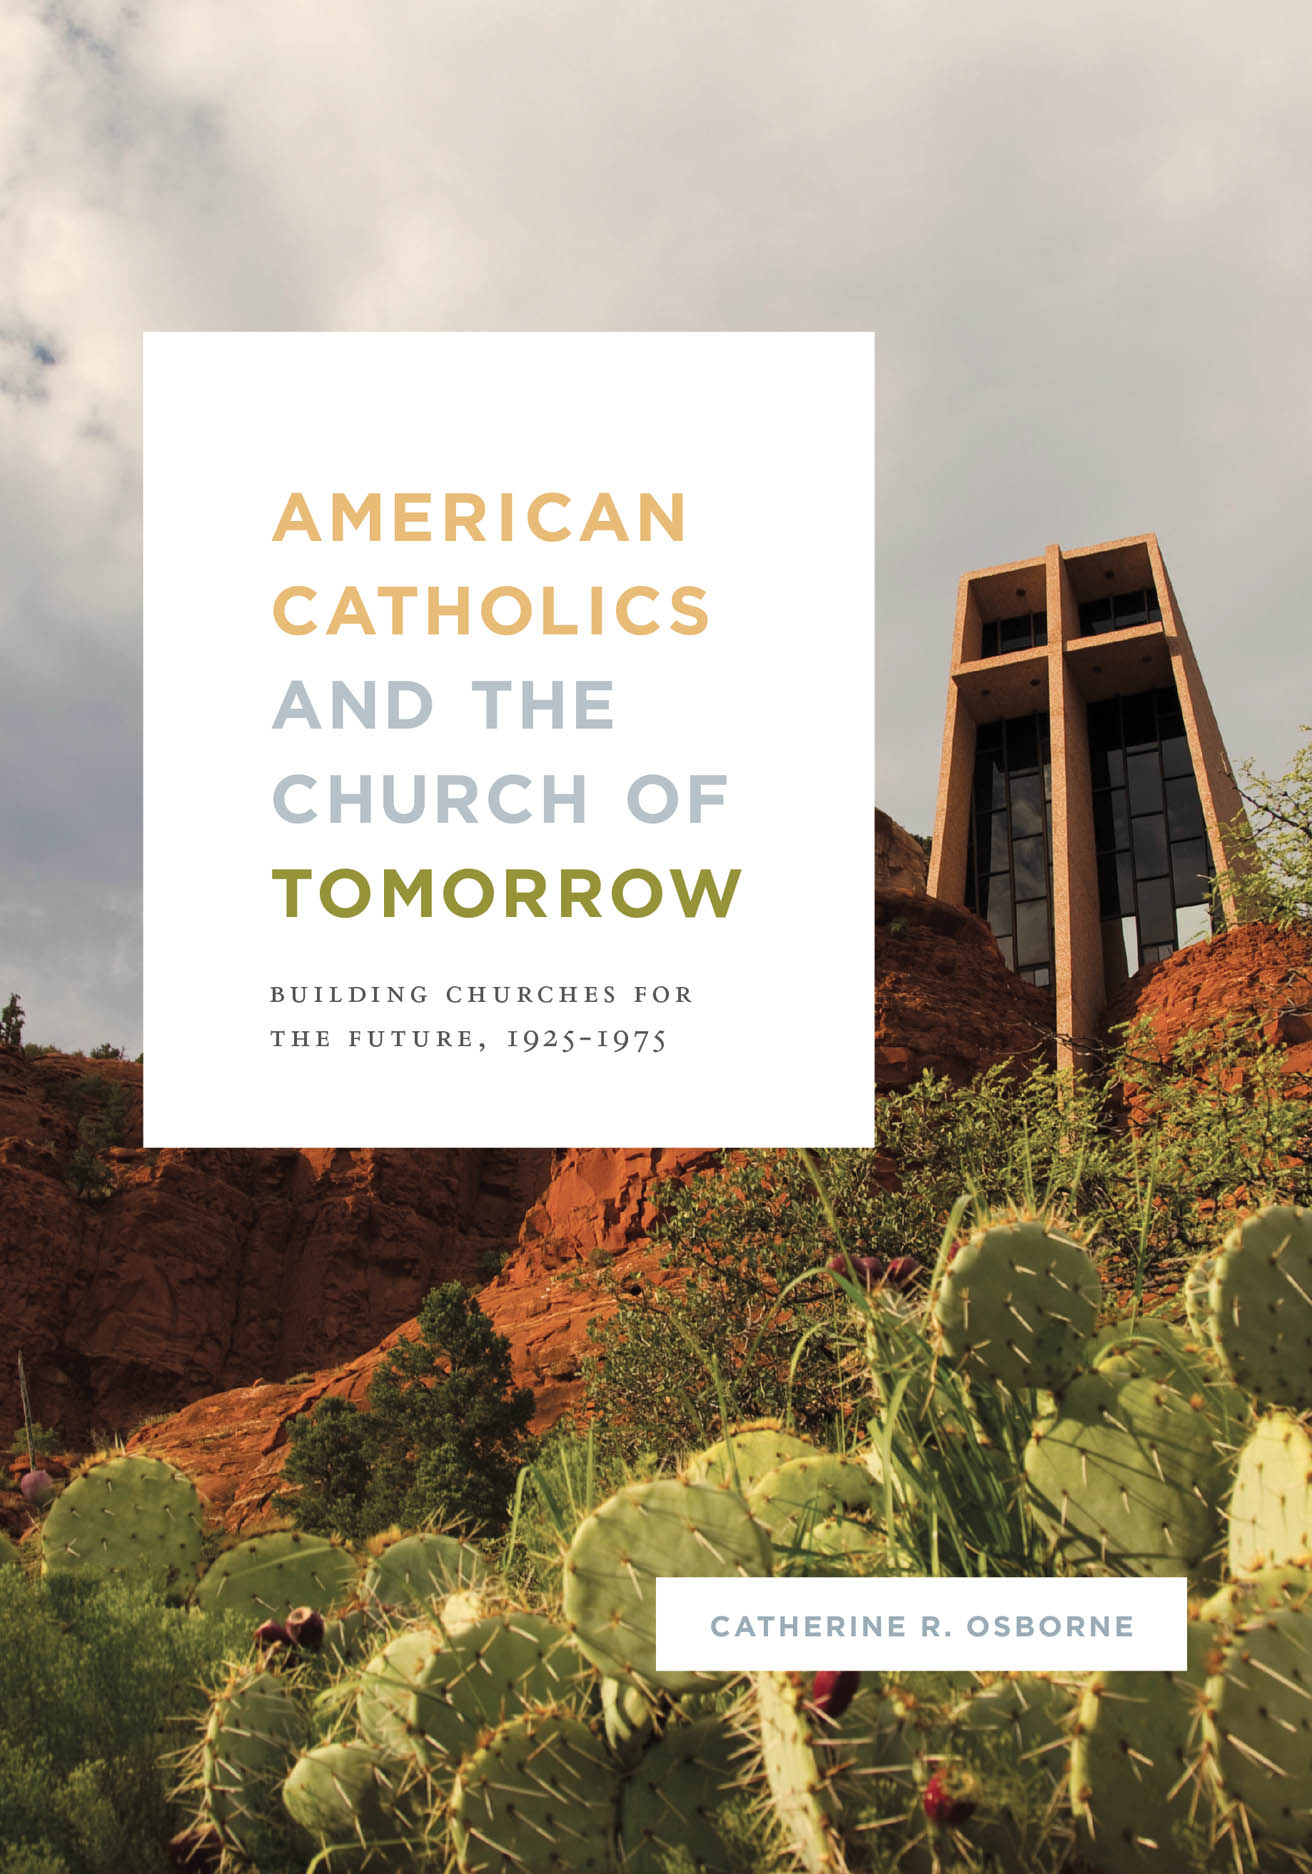 American Catholics and the Church of Tomorrow